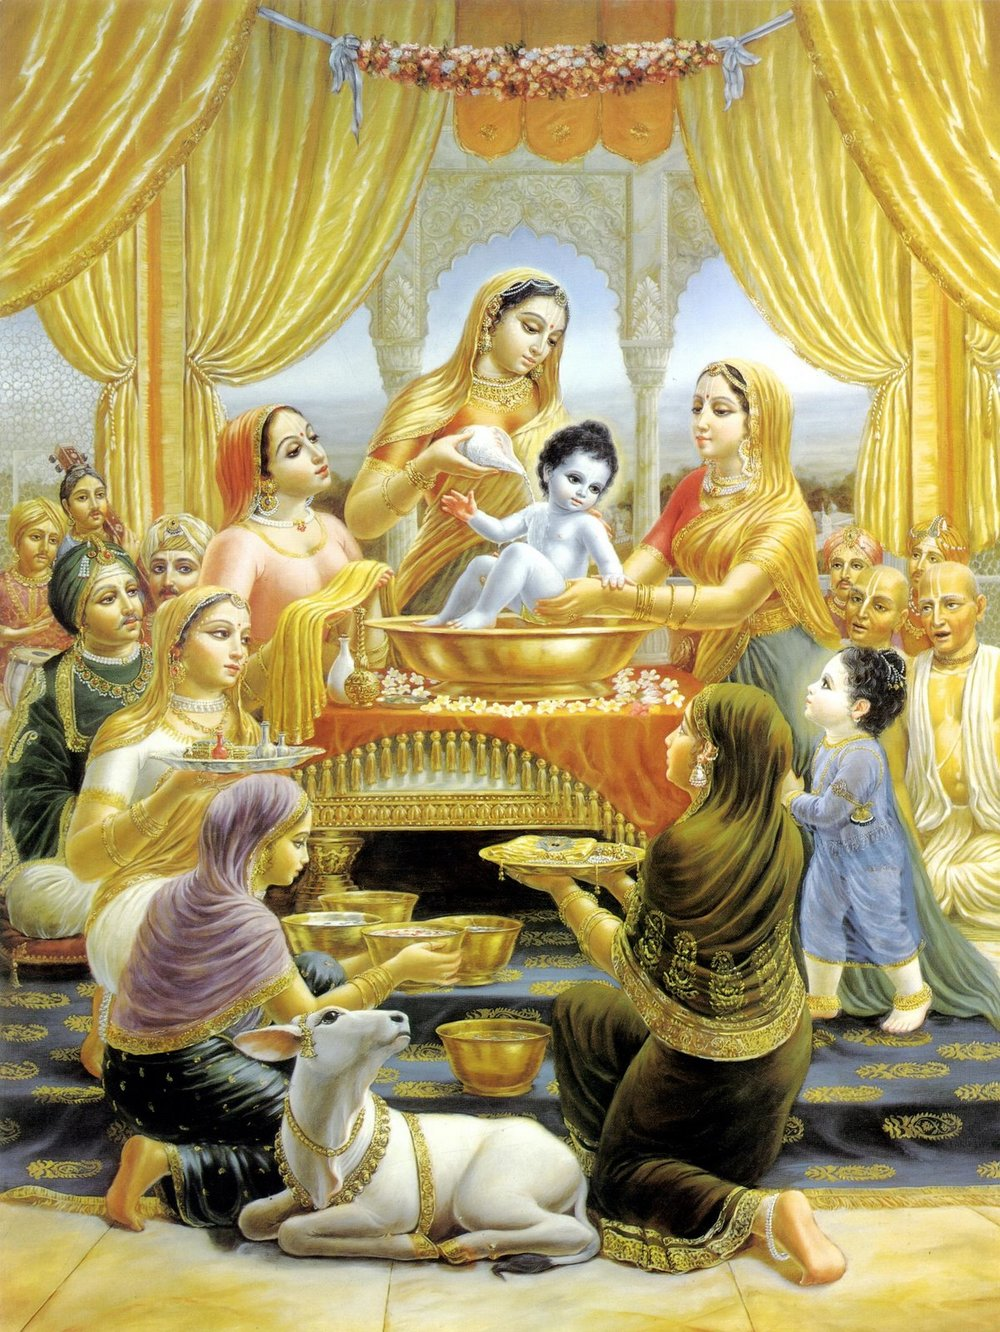 Baby Krishna's bathing and naming ceremony.